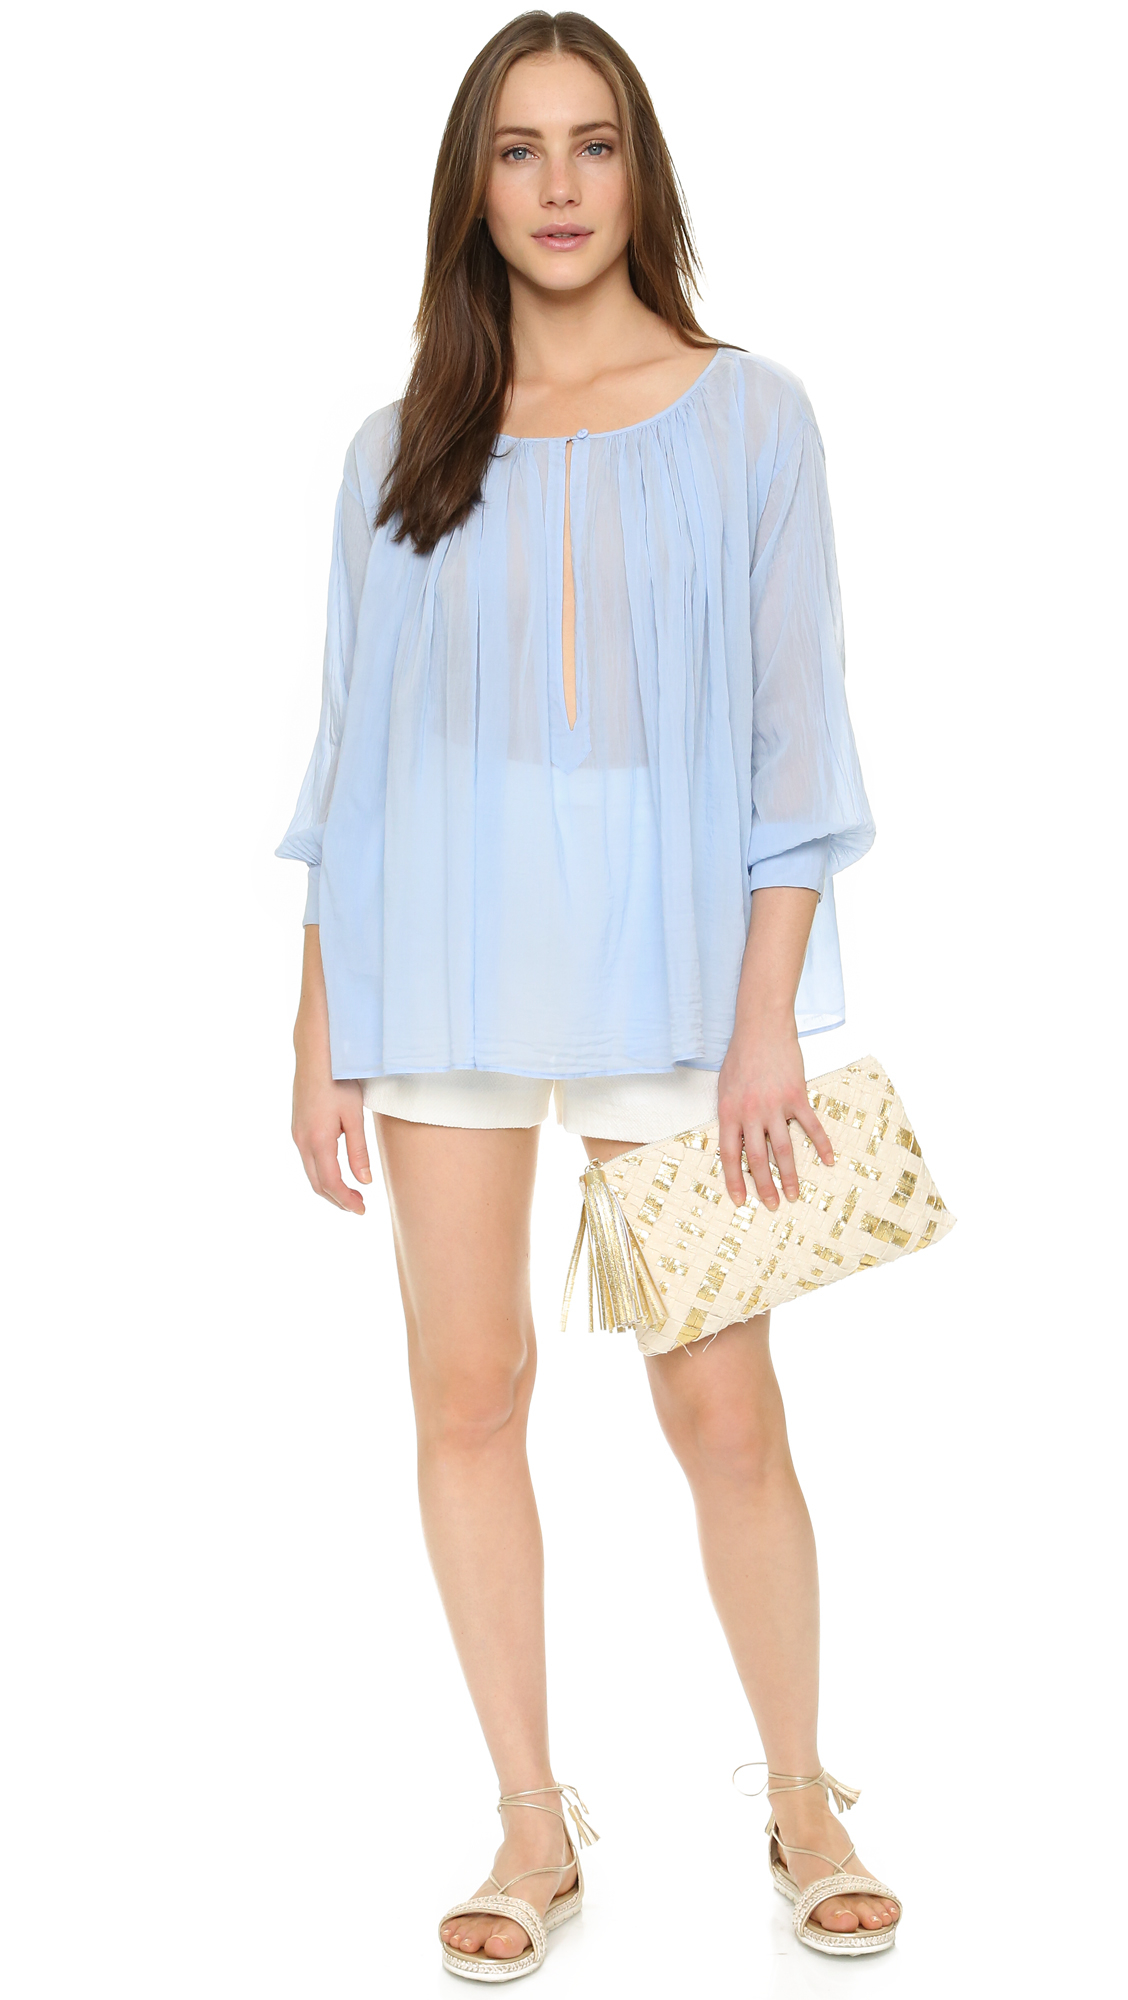 Giada forte Voile Curled Shirt in Blue